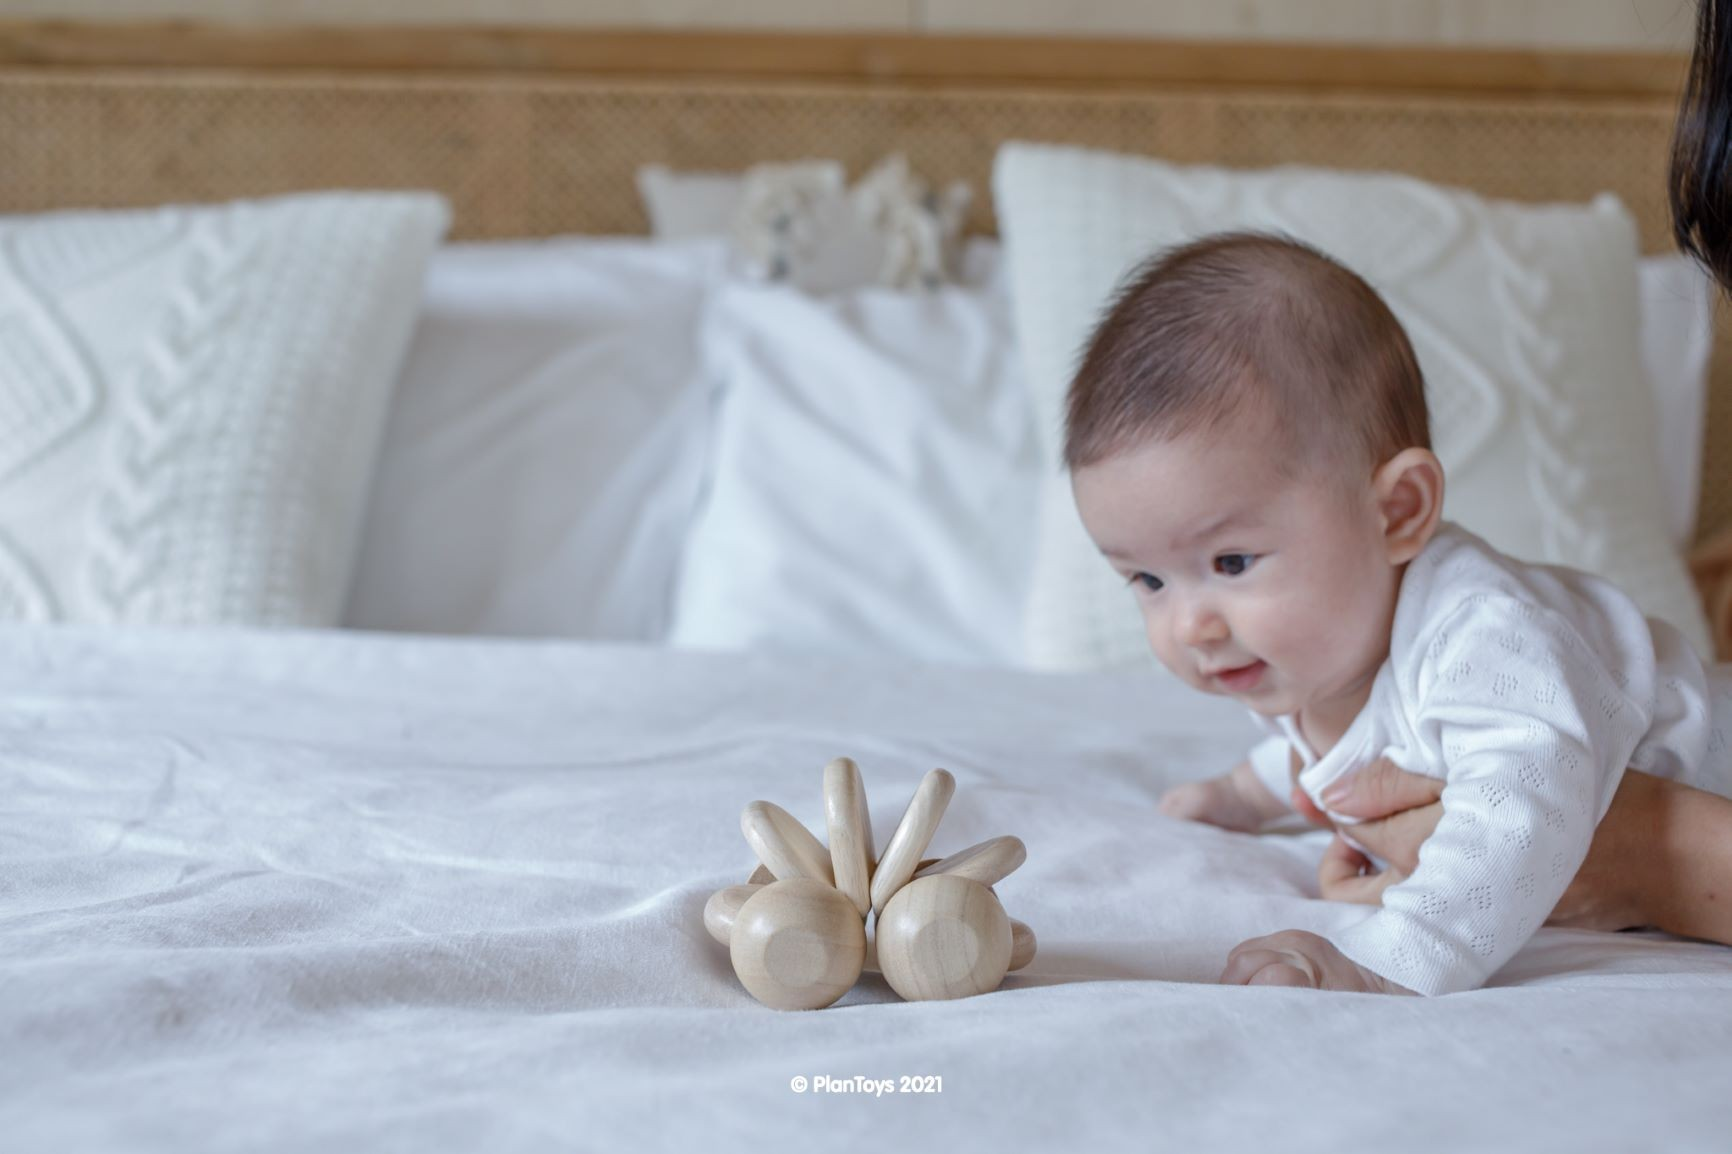 5268_PlanToys_BABY_CAR_-_NATURAL_Babies_Natural_Color_Fine_Motor_Coordination_Tactile_Visual_Emotion_6m_Wooden_toys_Education_toys_Safety_Toys_Non-toxic_0.jpg